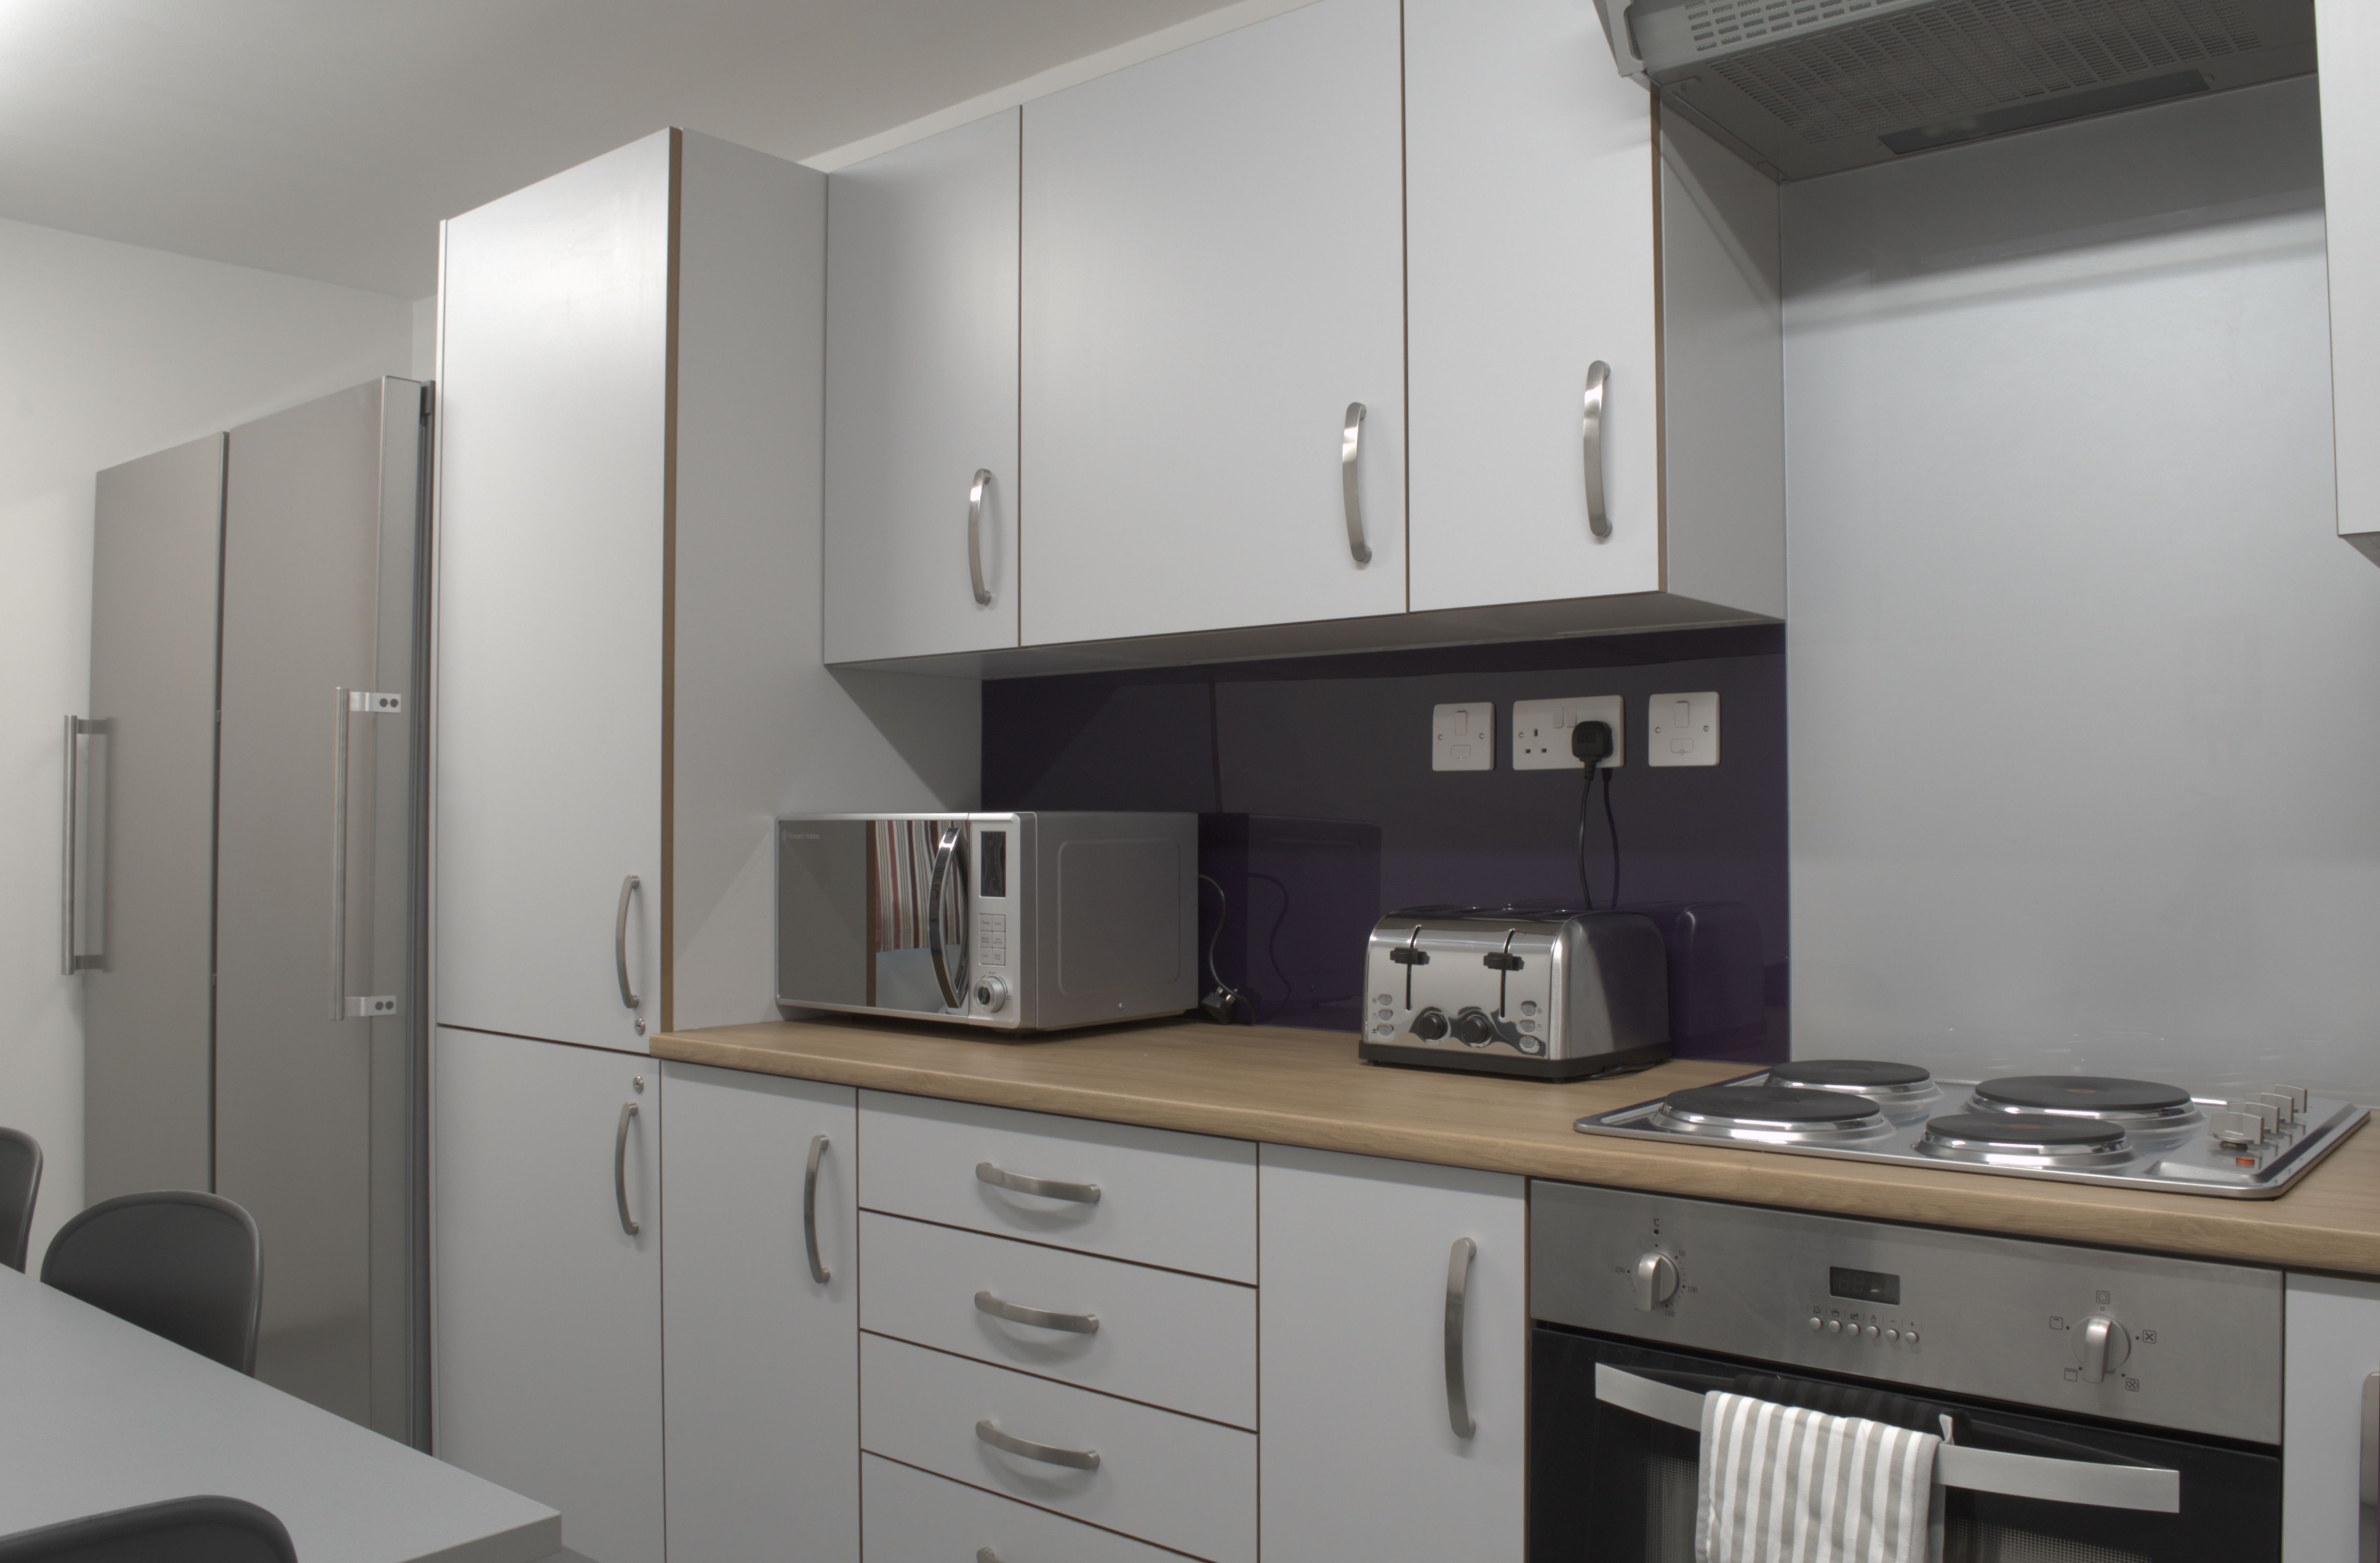 A kitchen with grey and purple units, a hob, oven, toaster, microwave and fridge.